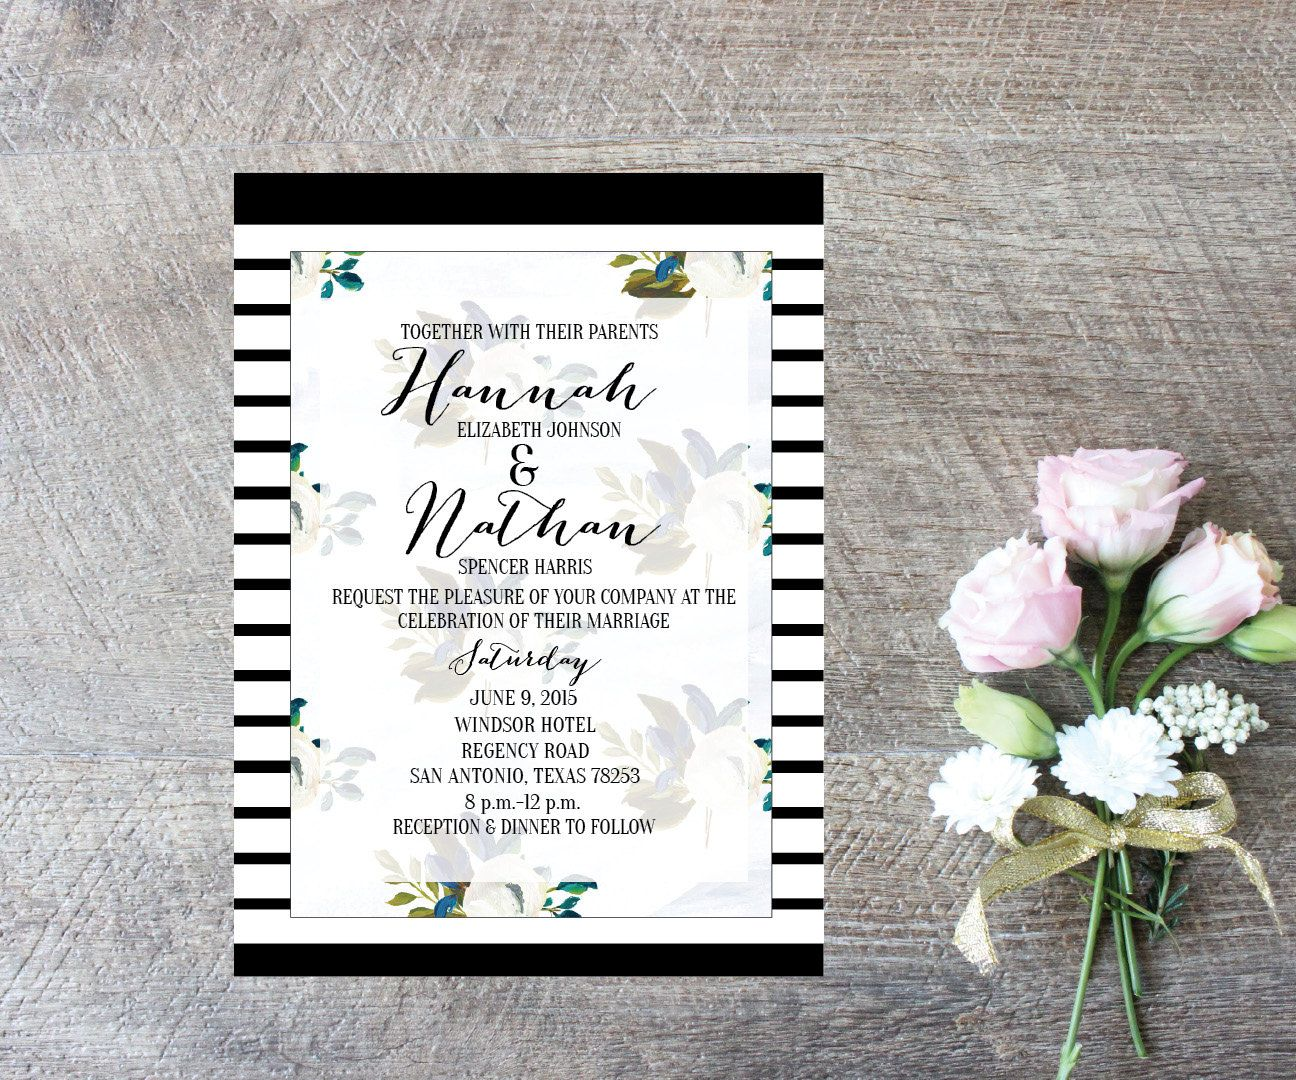 Wedding Invitation-Digital File-Photo Card-Digital invites-Watercolor Flowers-5x7-Wedding Card-Photo Card-Save the Date by MElizondoDesigns on Etsy